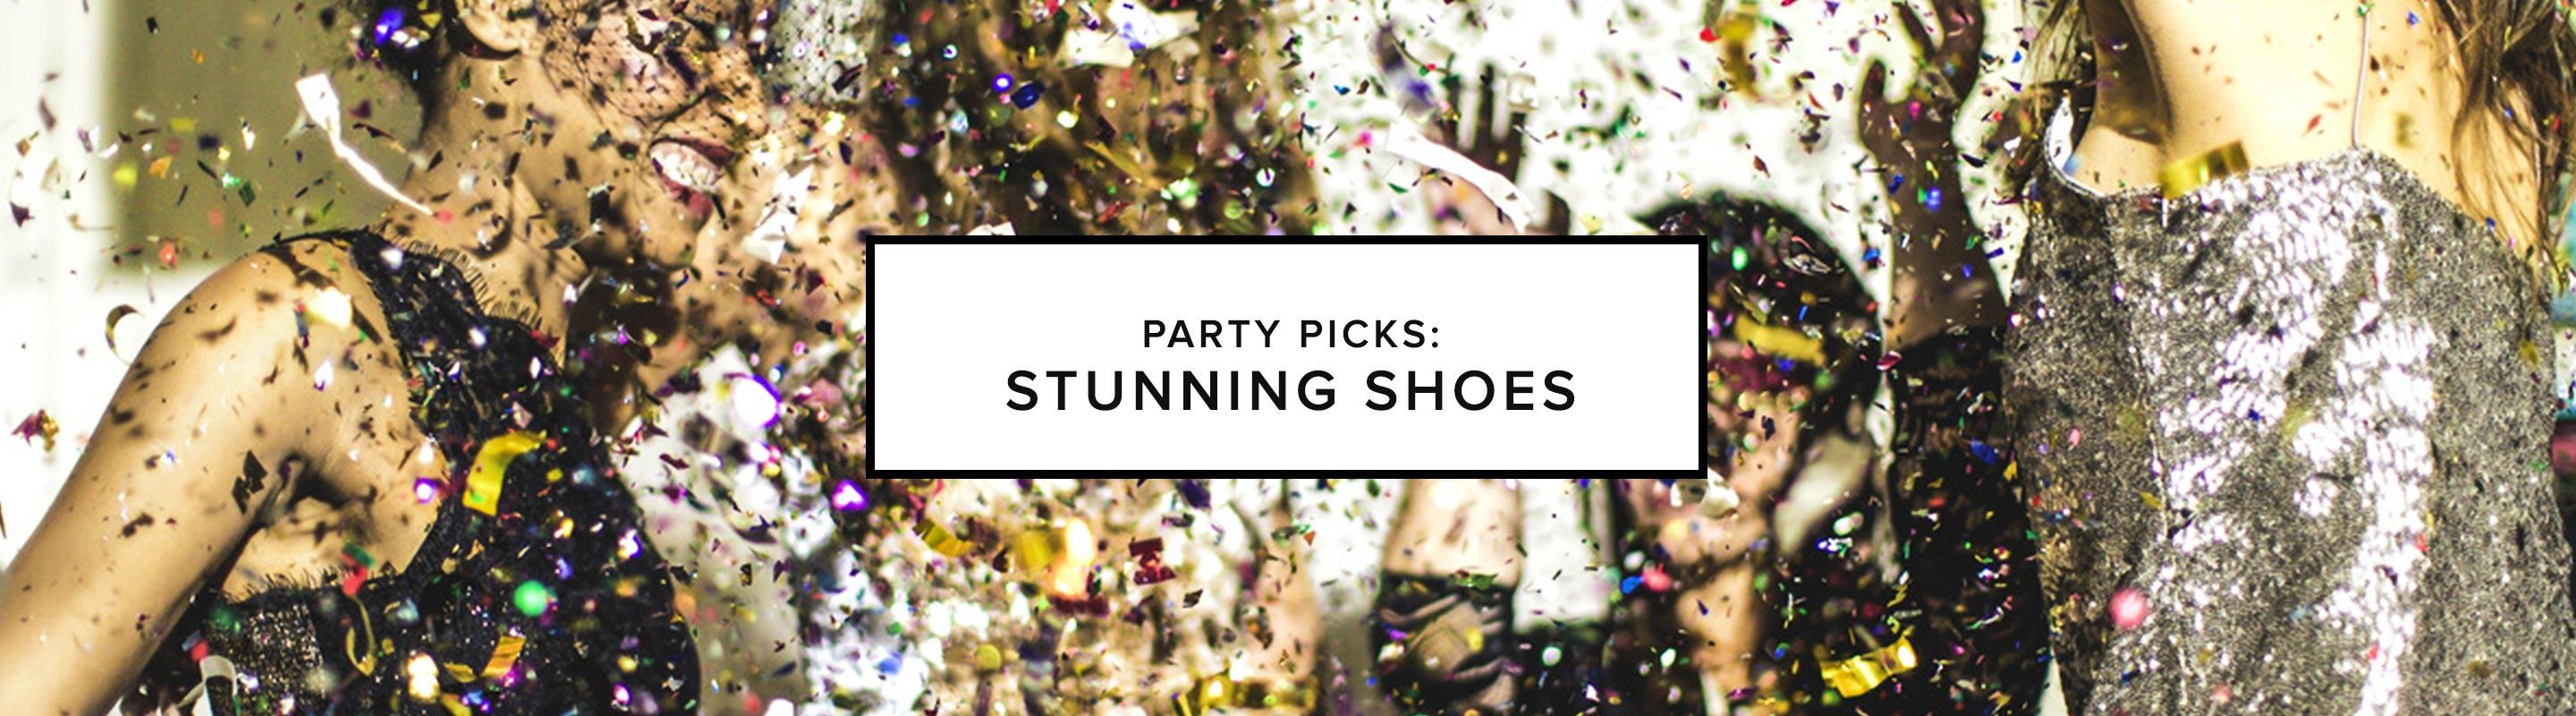 Party Picks: Stunning Shoes